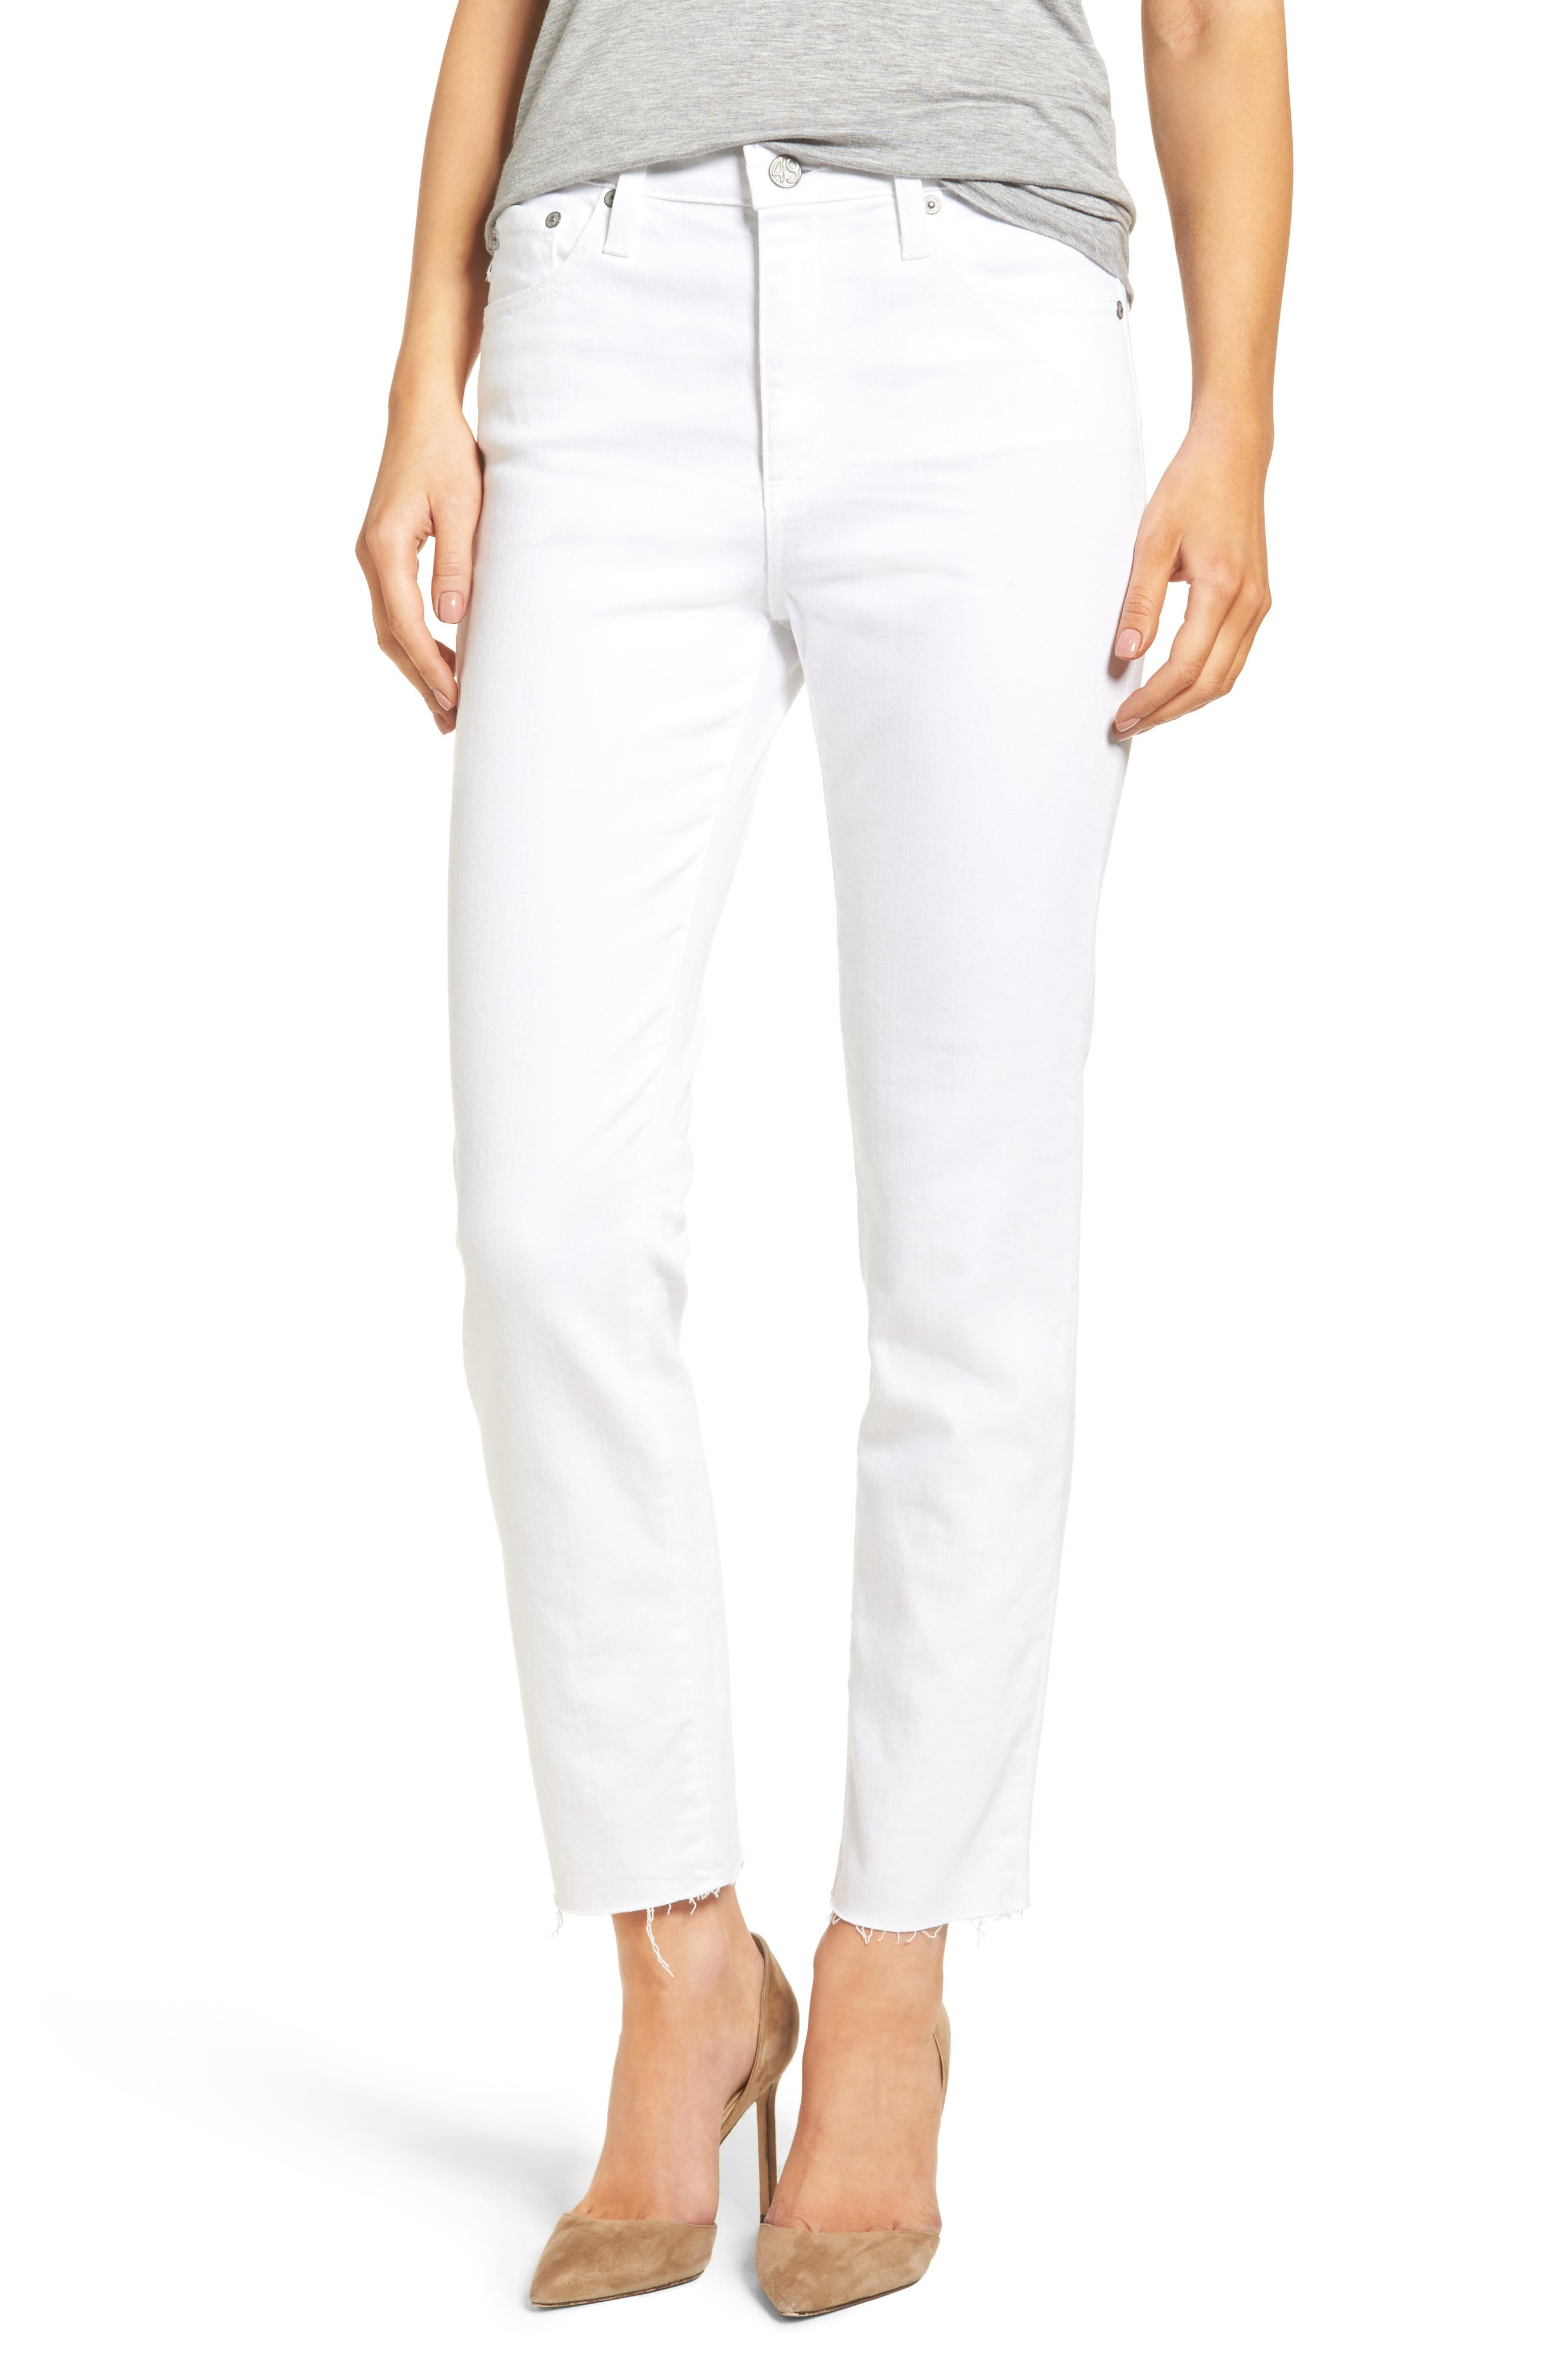 The Isabelle High Waist Crop Straight Leg Jeans,                         Main,                         color, 01 Years - White